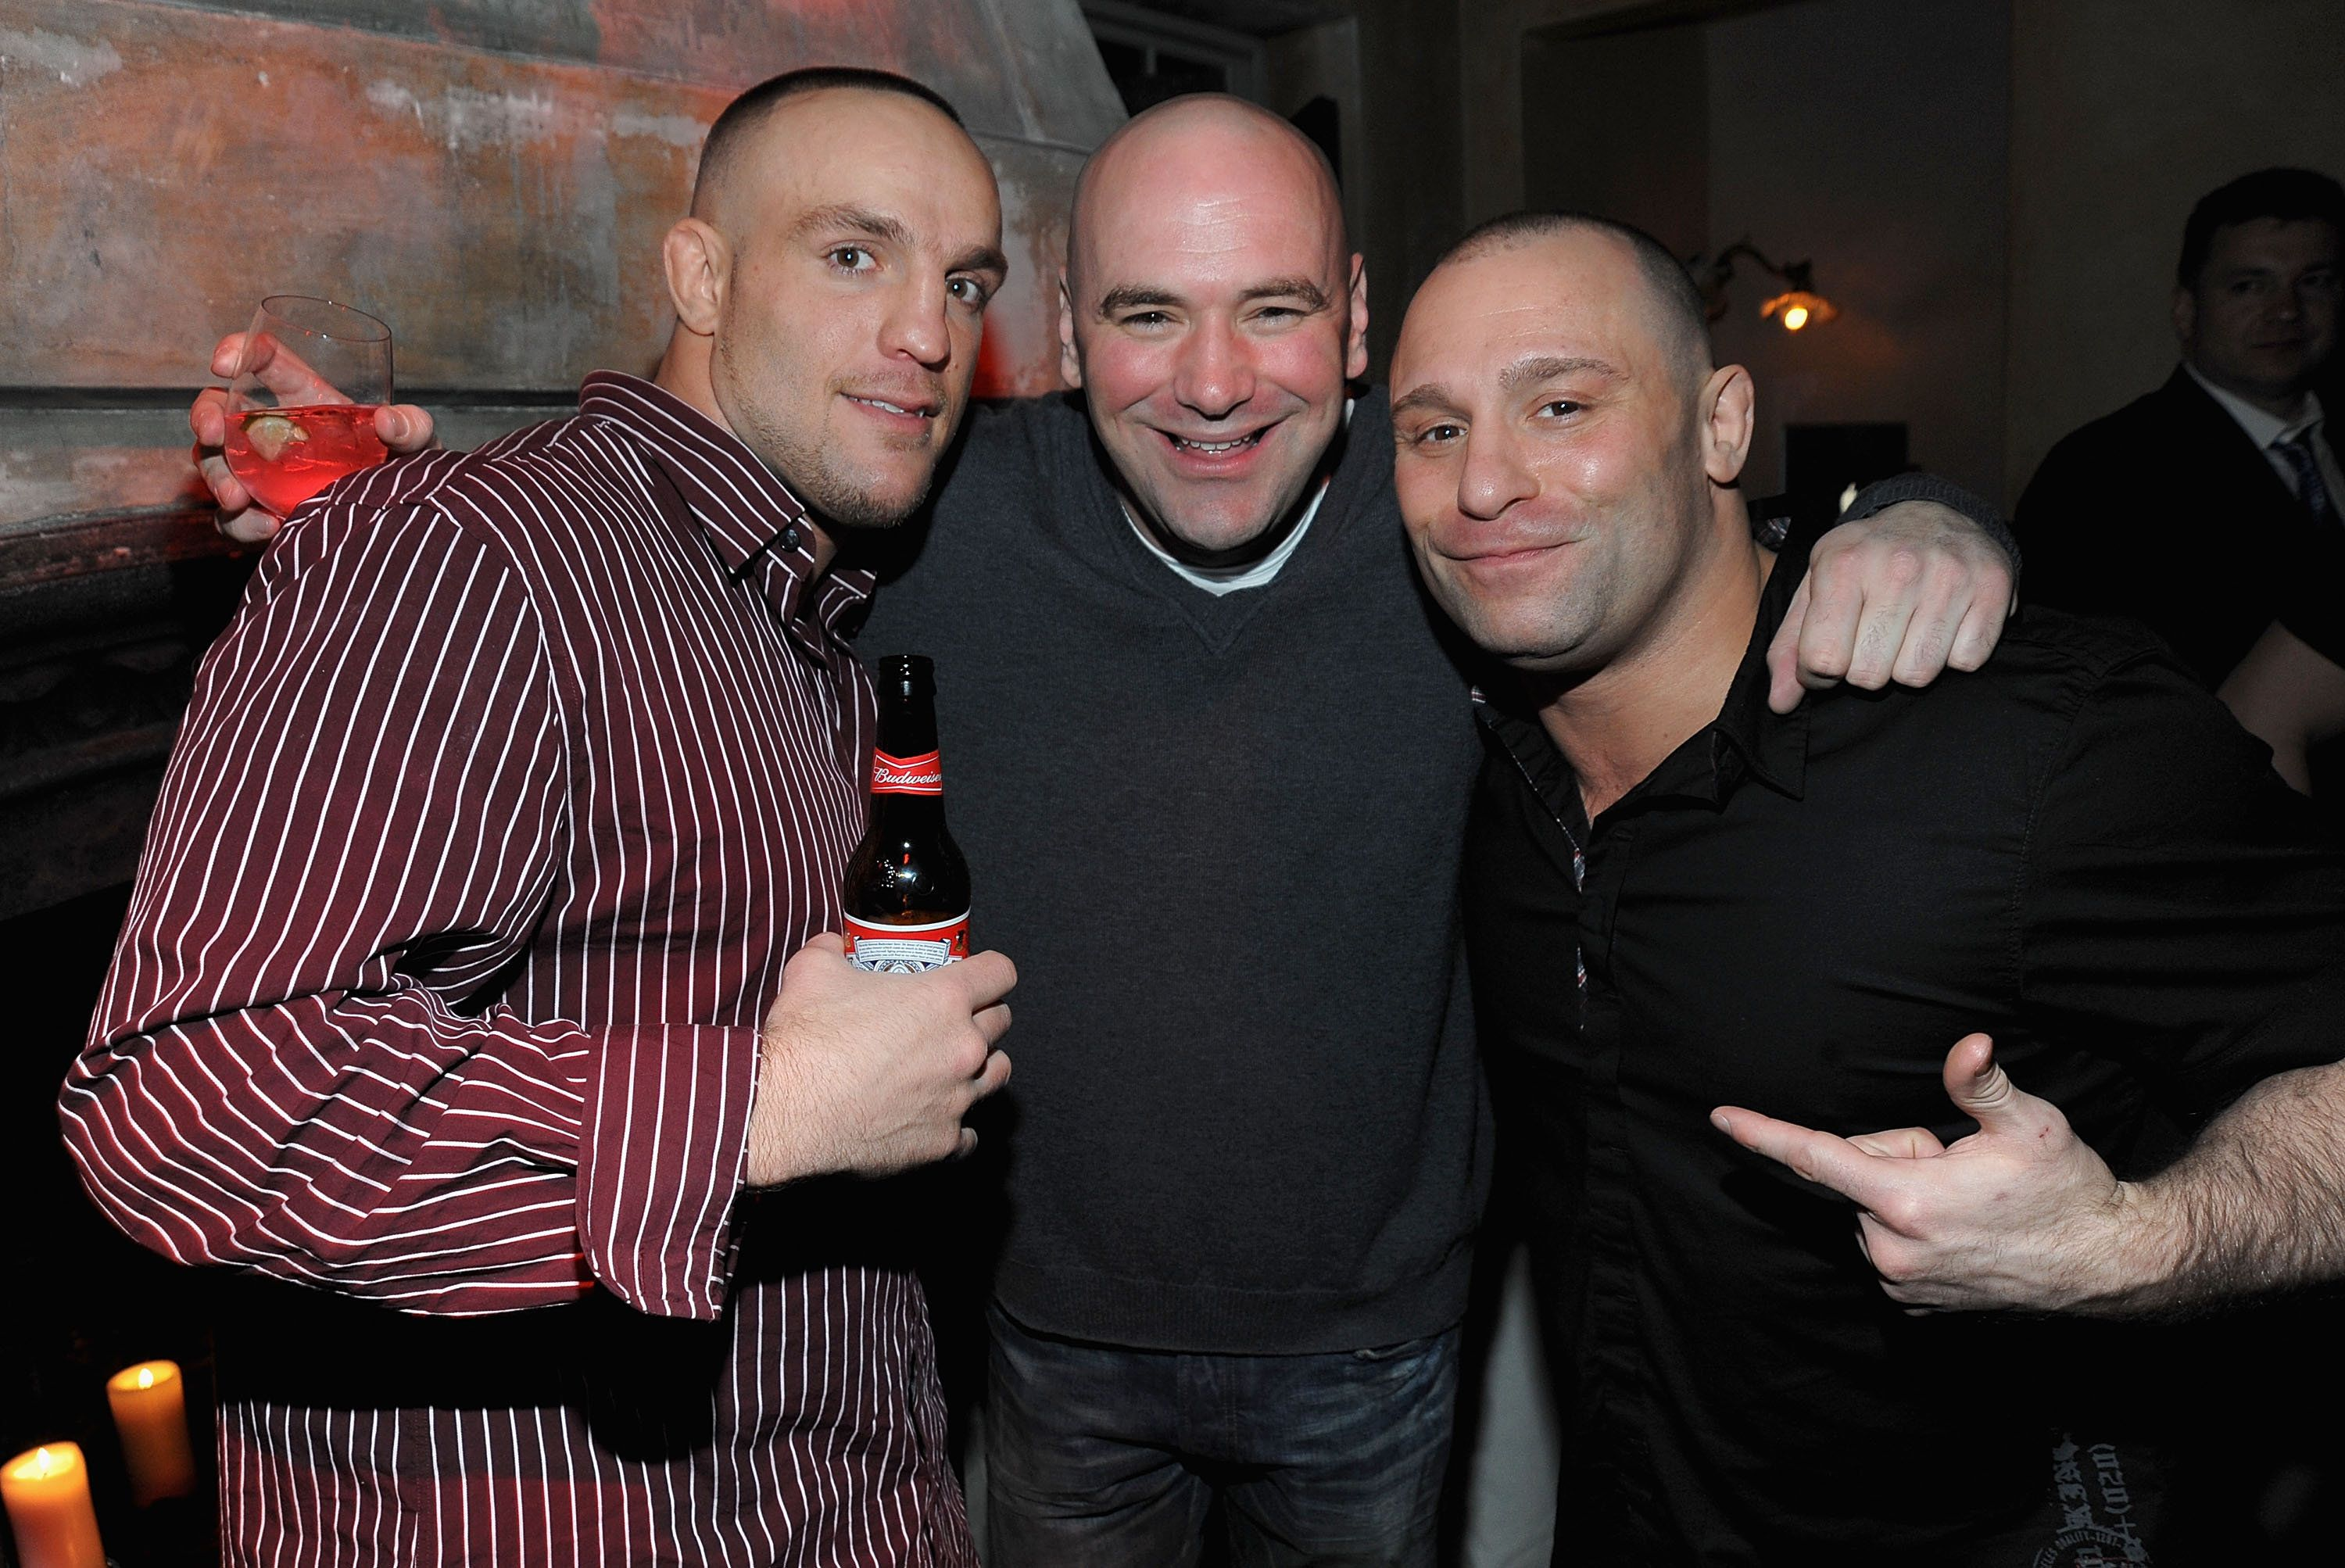 MMA fighter Pete Sell, Dana White, UFC President and UFC fighter Matt Serra attend the UFC 111 party at 632 Hudson on March 26, 2010 in New York City. (Photo by Jamie McCarthy/WireImage)